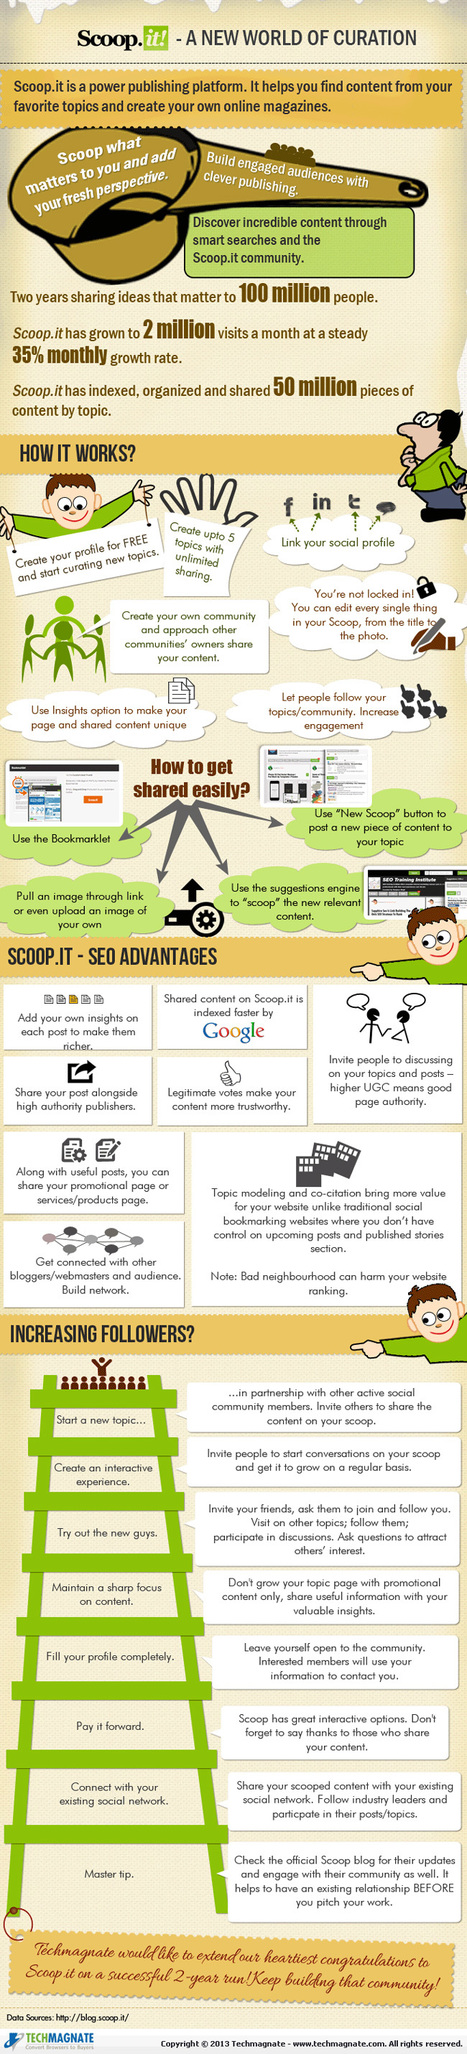 Scoop.It for SEO – A New World of Curation [Infographic] | MarketingHits | Scoop.it